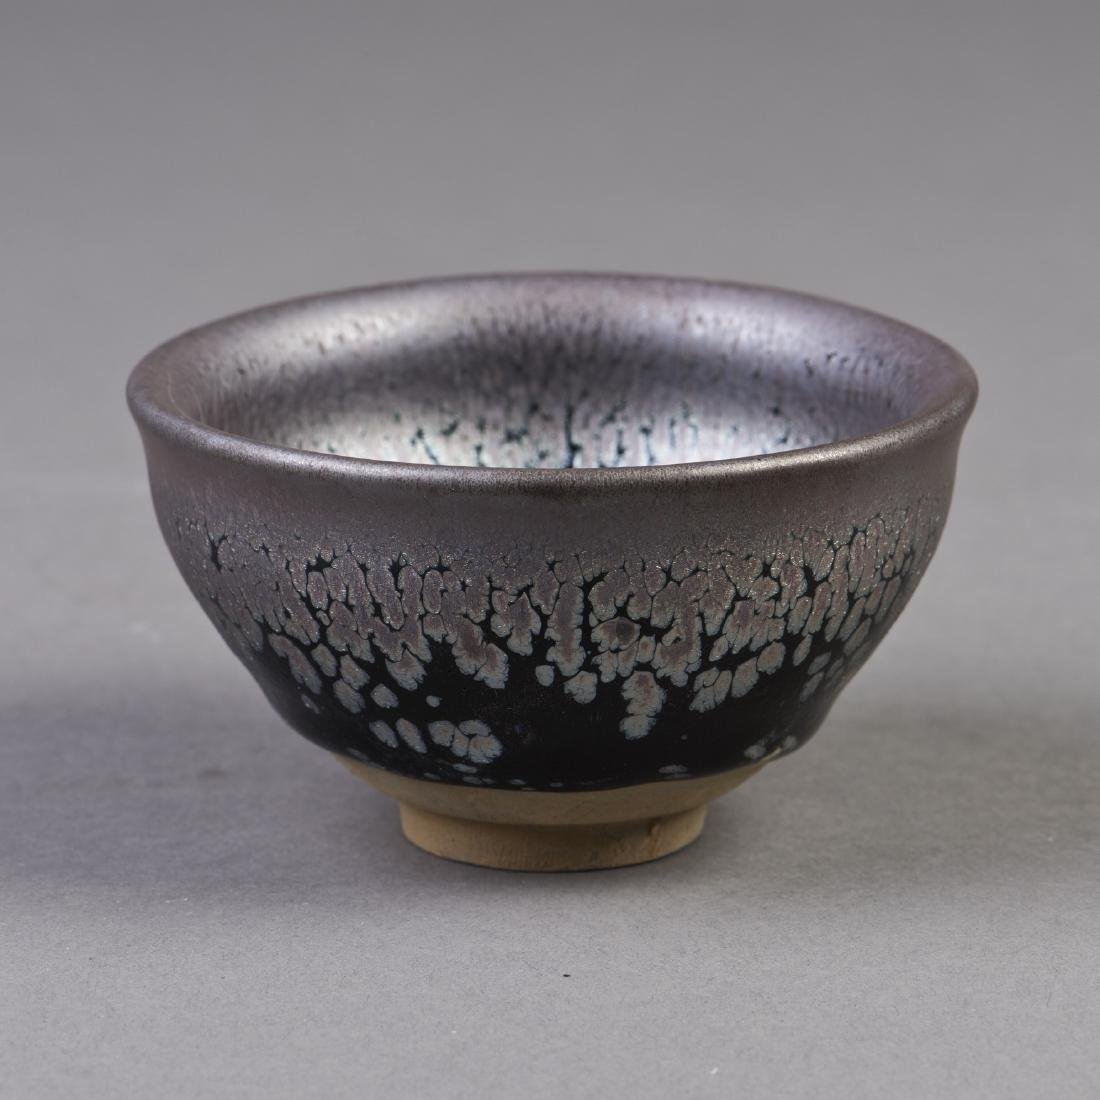 A BLACK GLAZED PROCELAIN BOWL